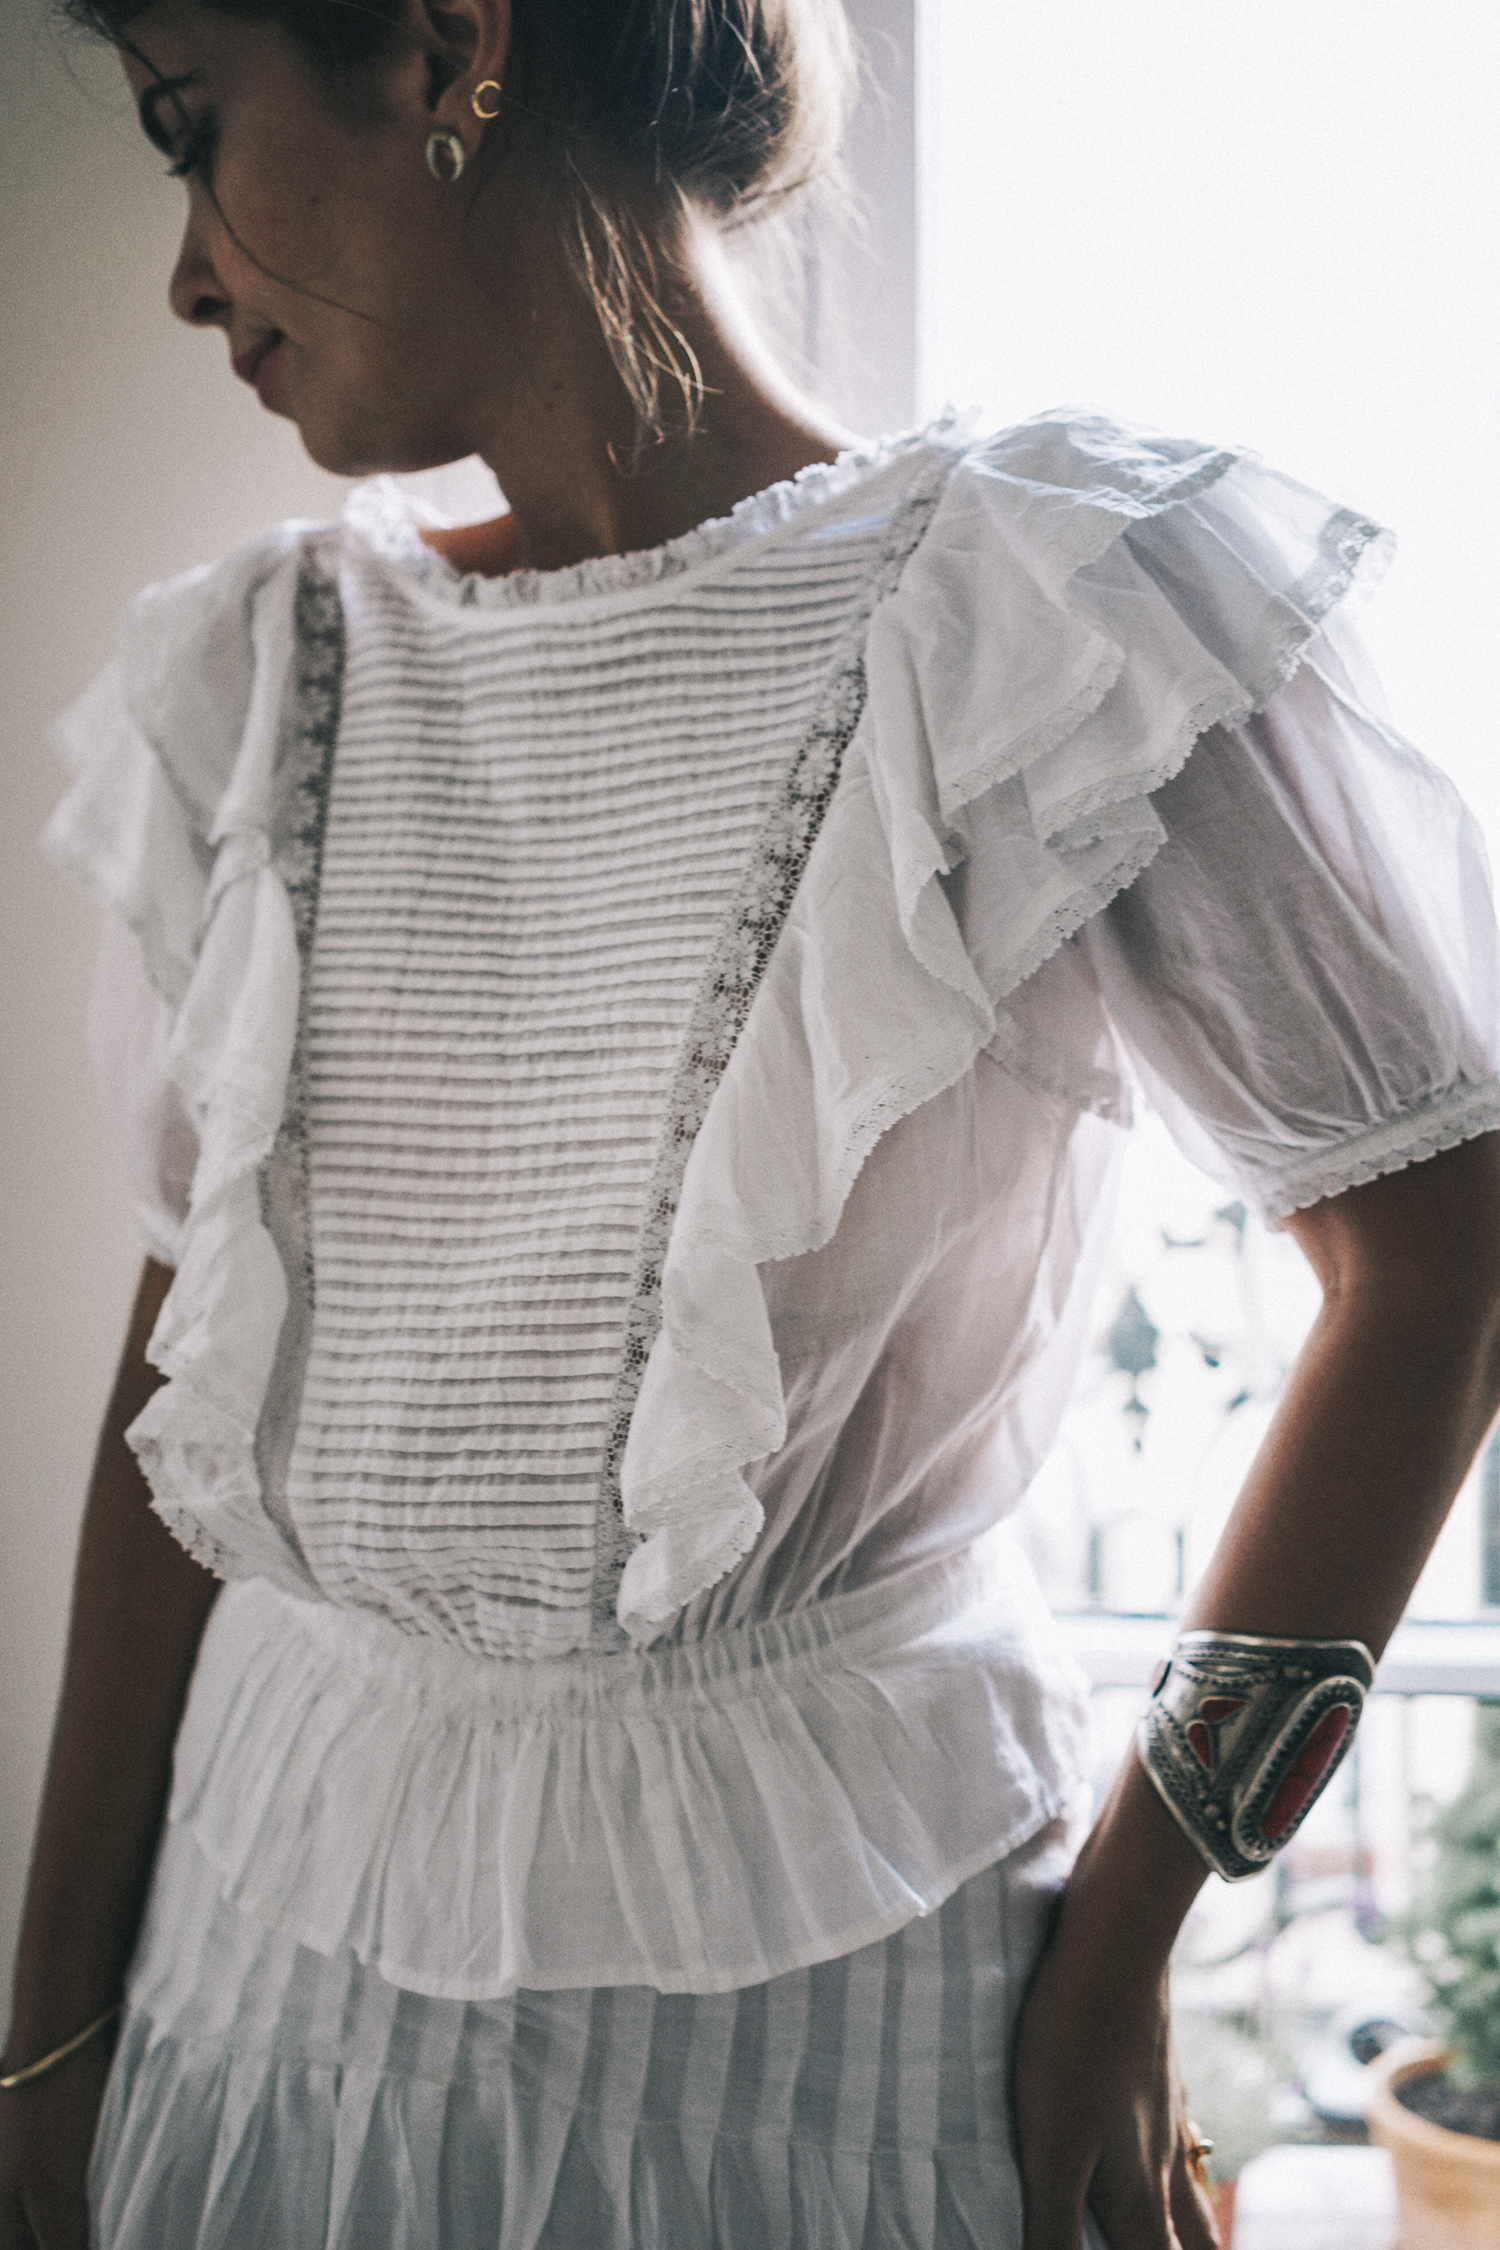 Home_Away-Isabel_Marant_Dress-Outfit-Paris-Collage_Vintage-50